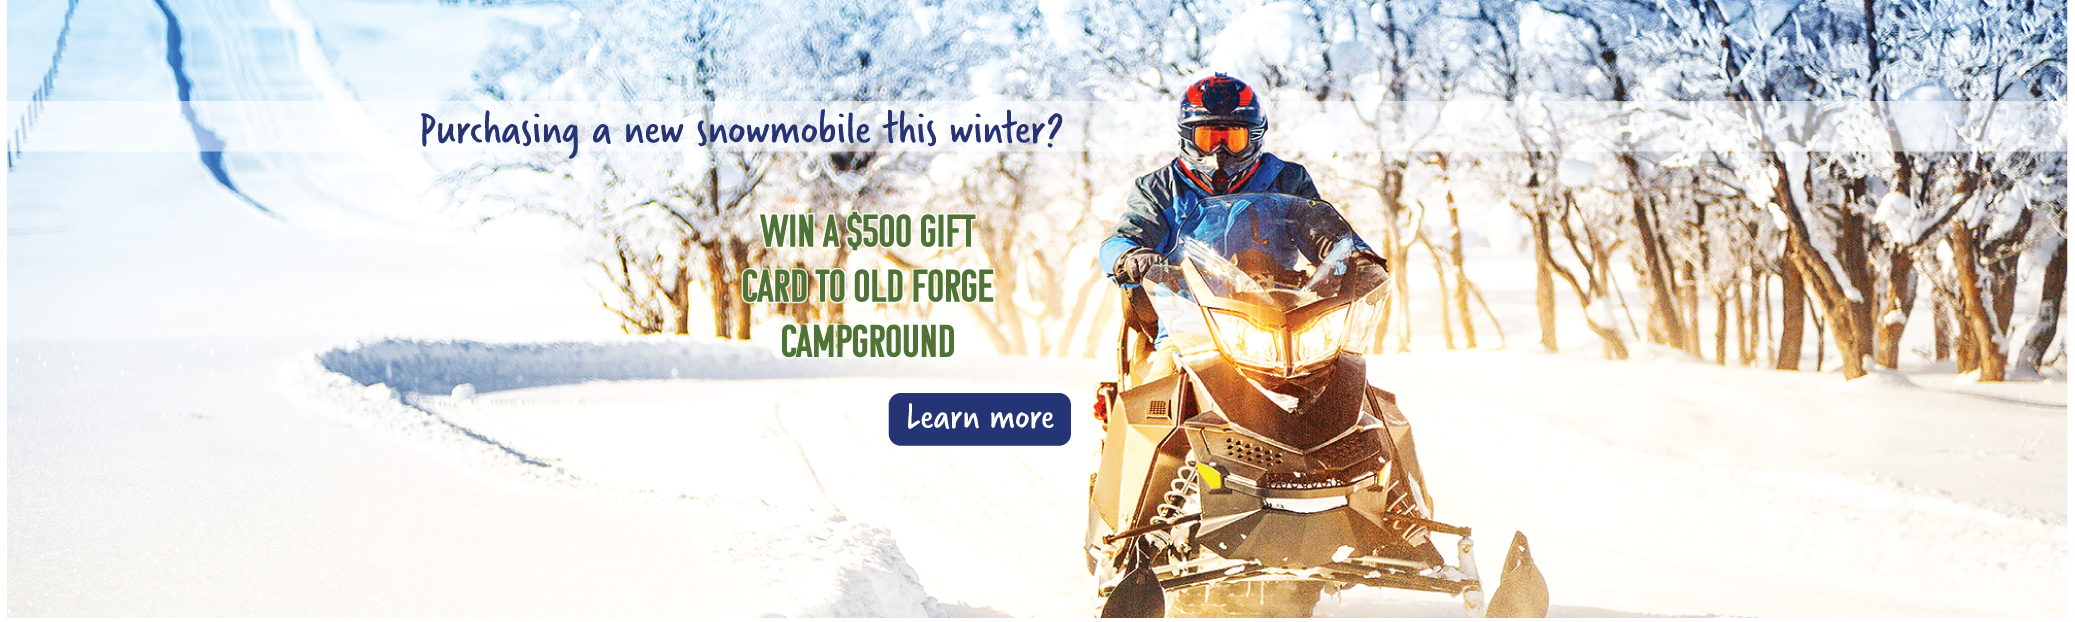 Snowmobile Loan Promotion